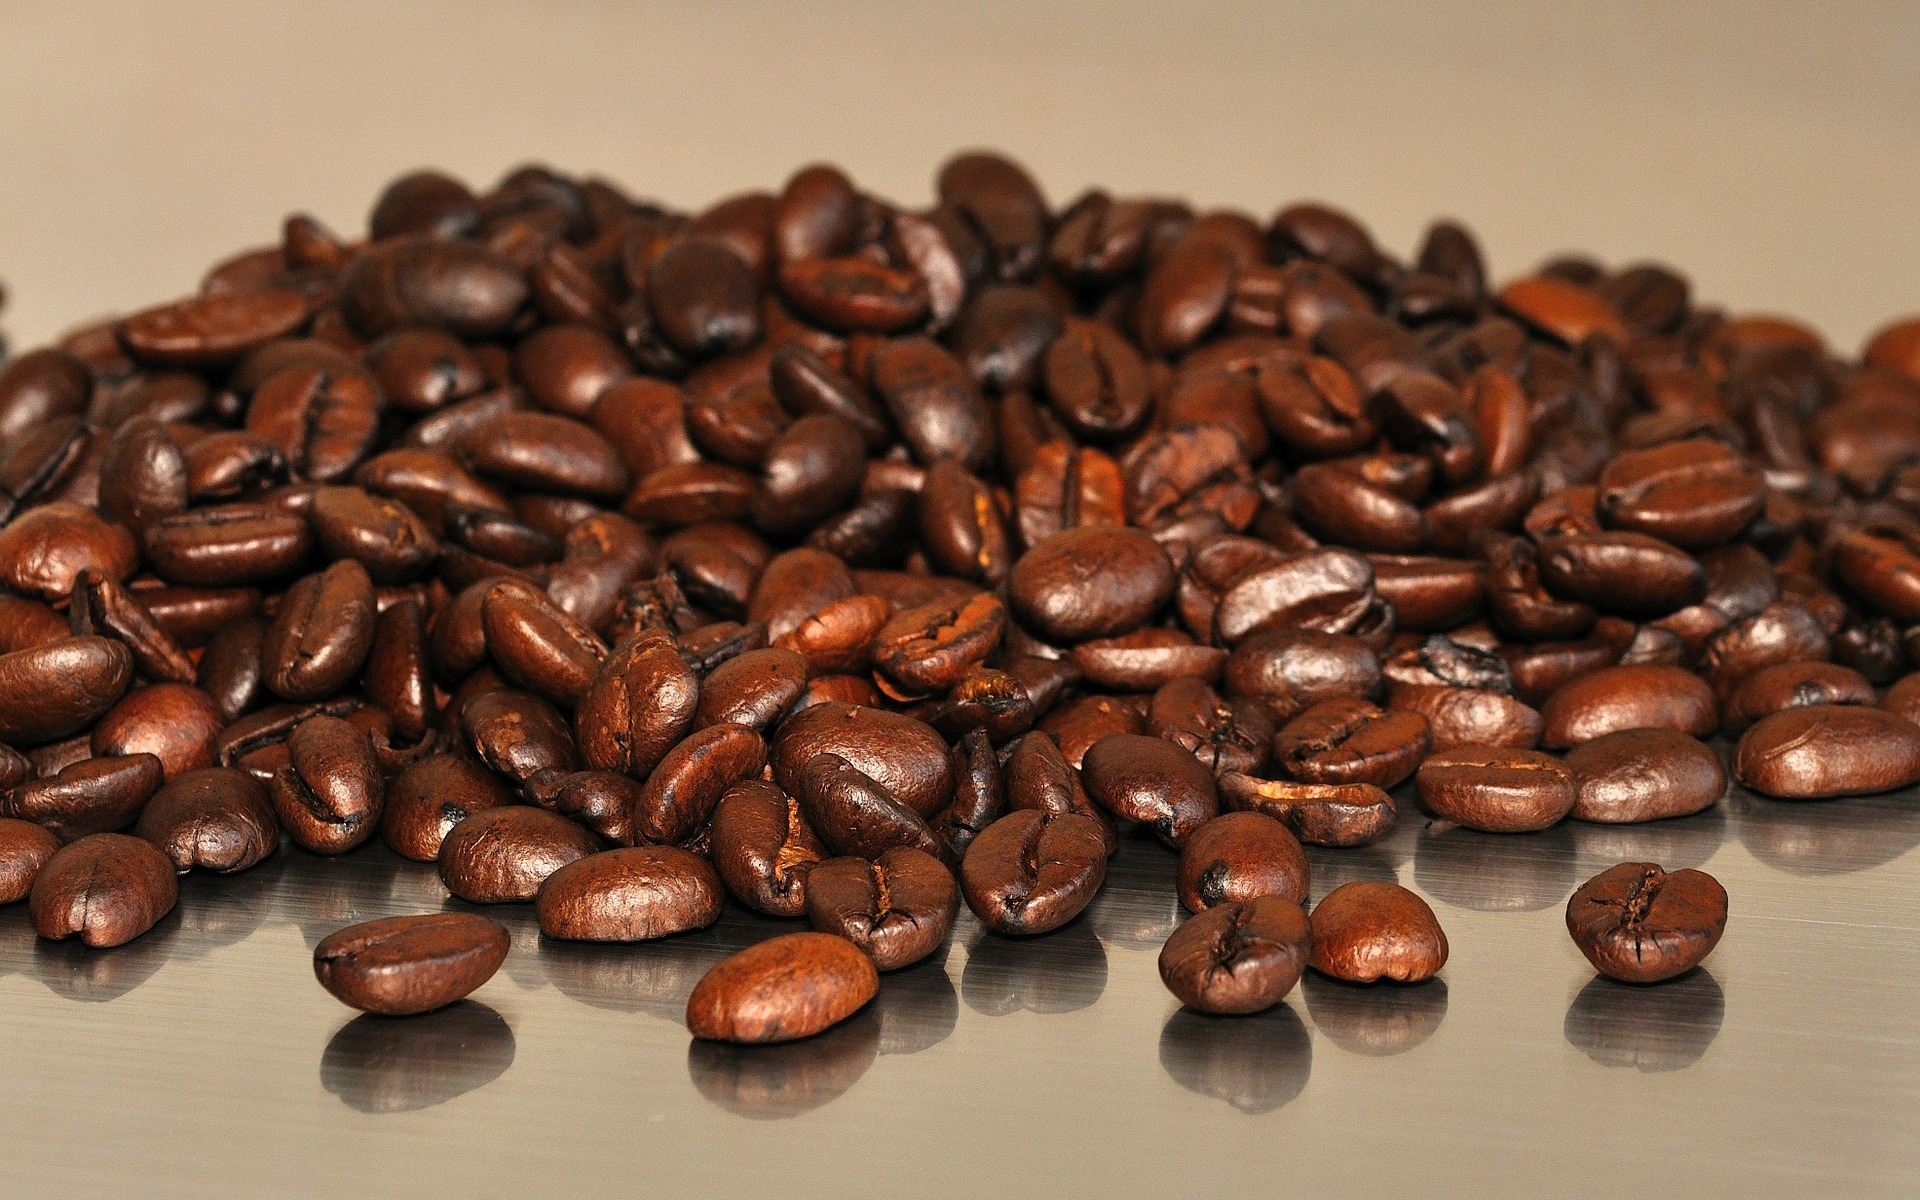 photo of fresh whole coffee beans